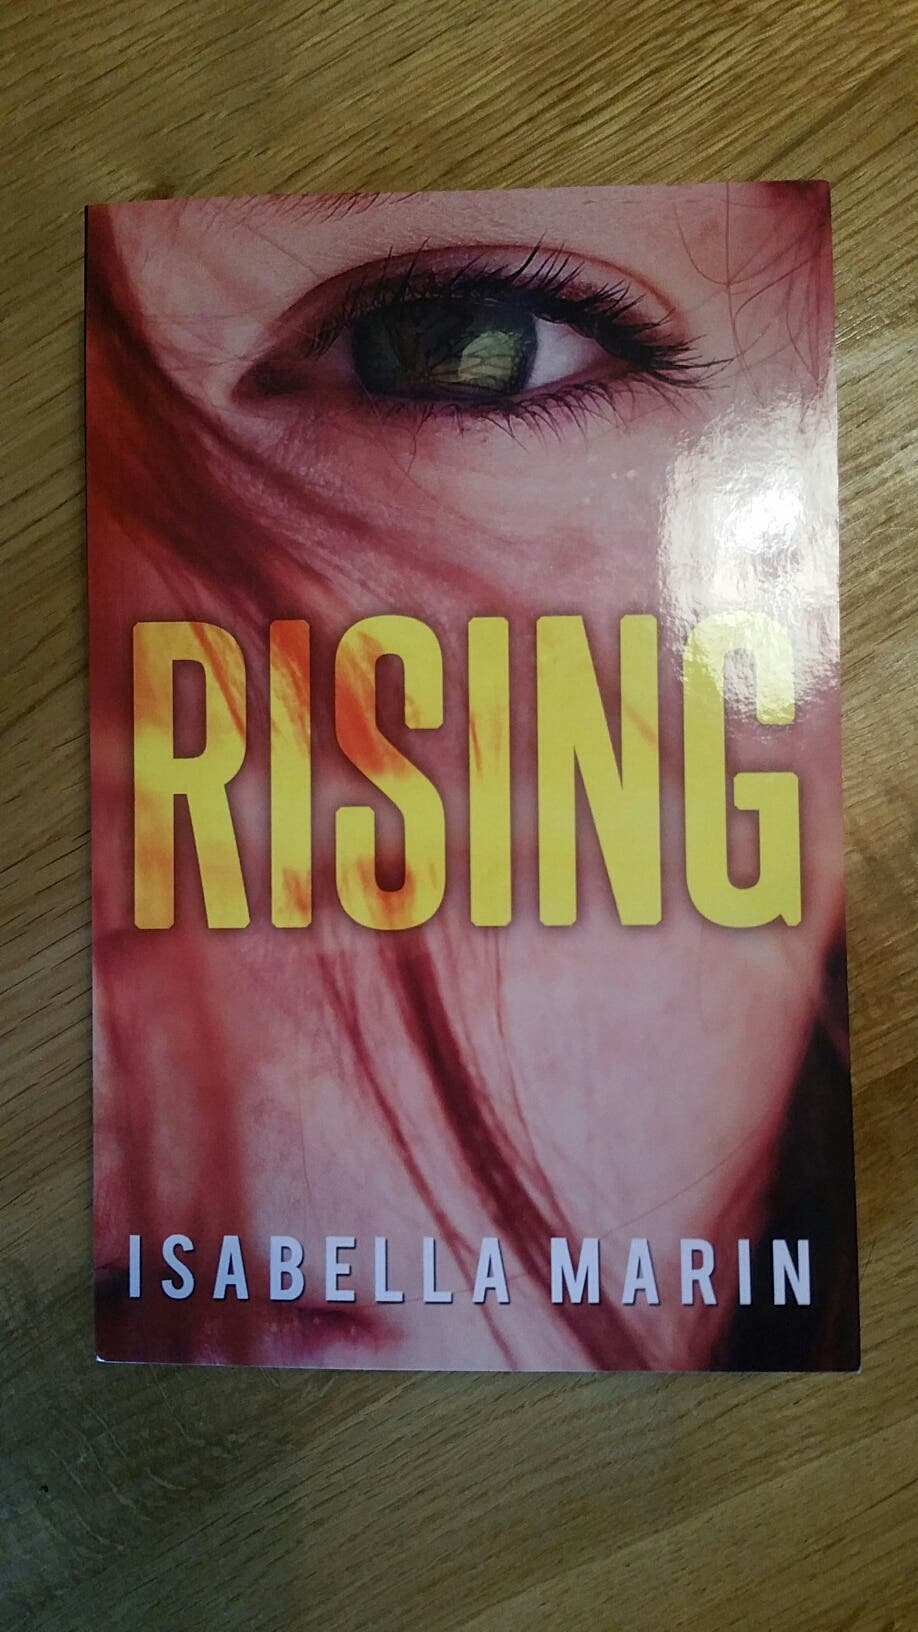 Proofread/Editing/Publishing - Rising/Non-Fiction Novel